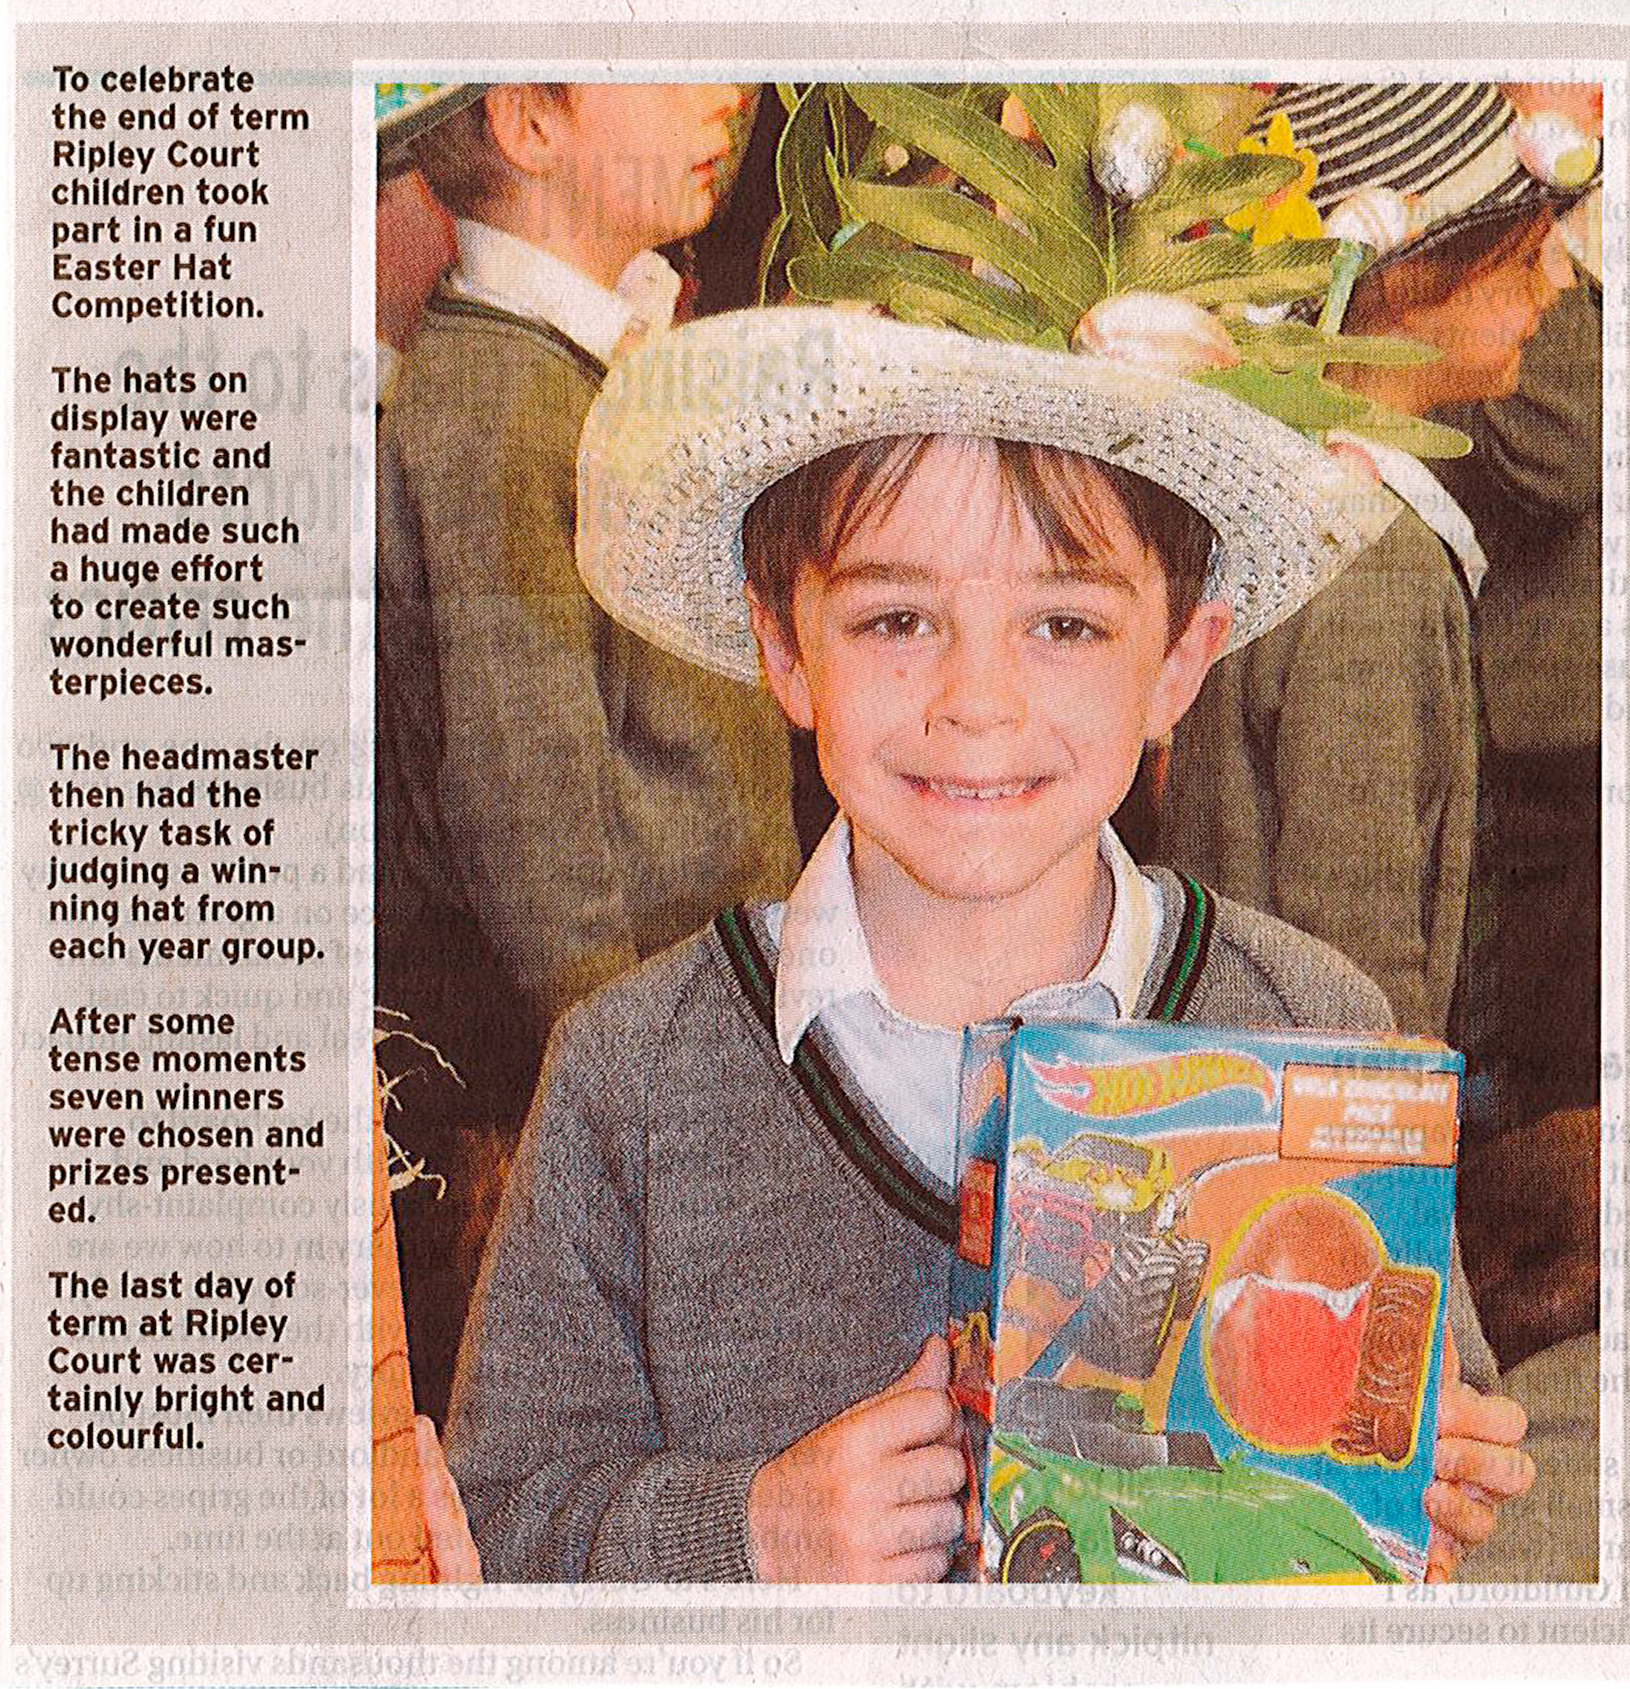 Surrey Advertiser   Easter Hat Competition   Easter Weekend 2017